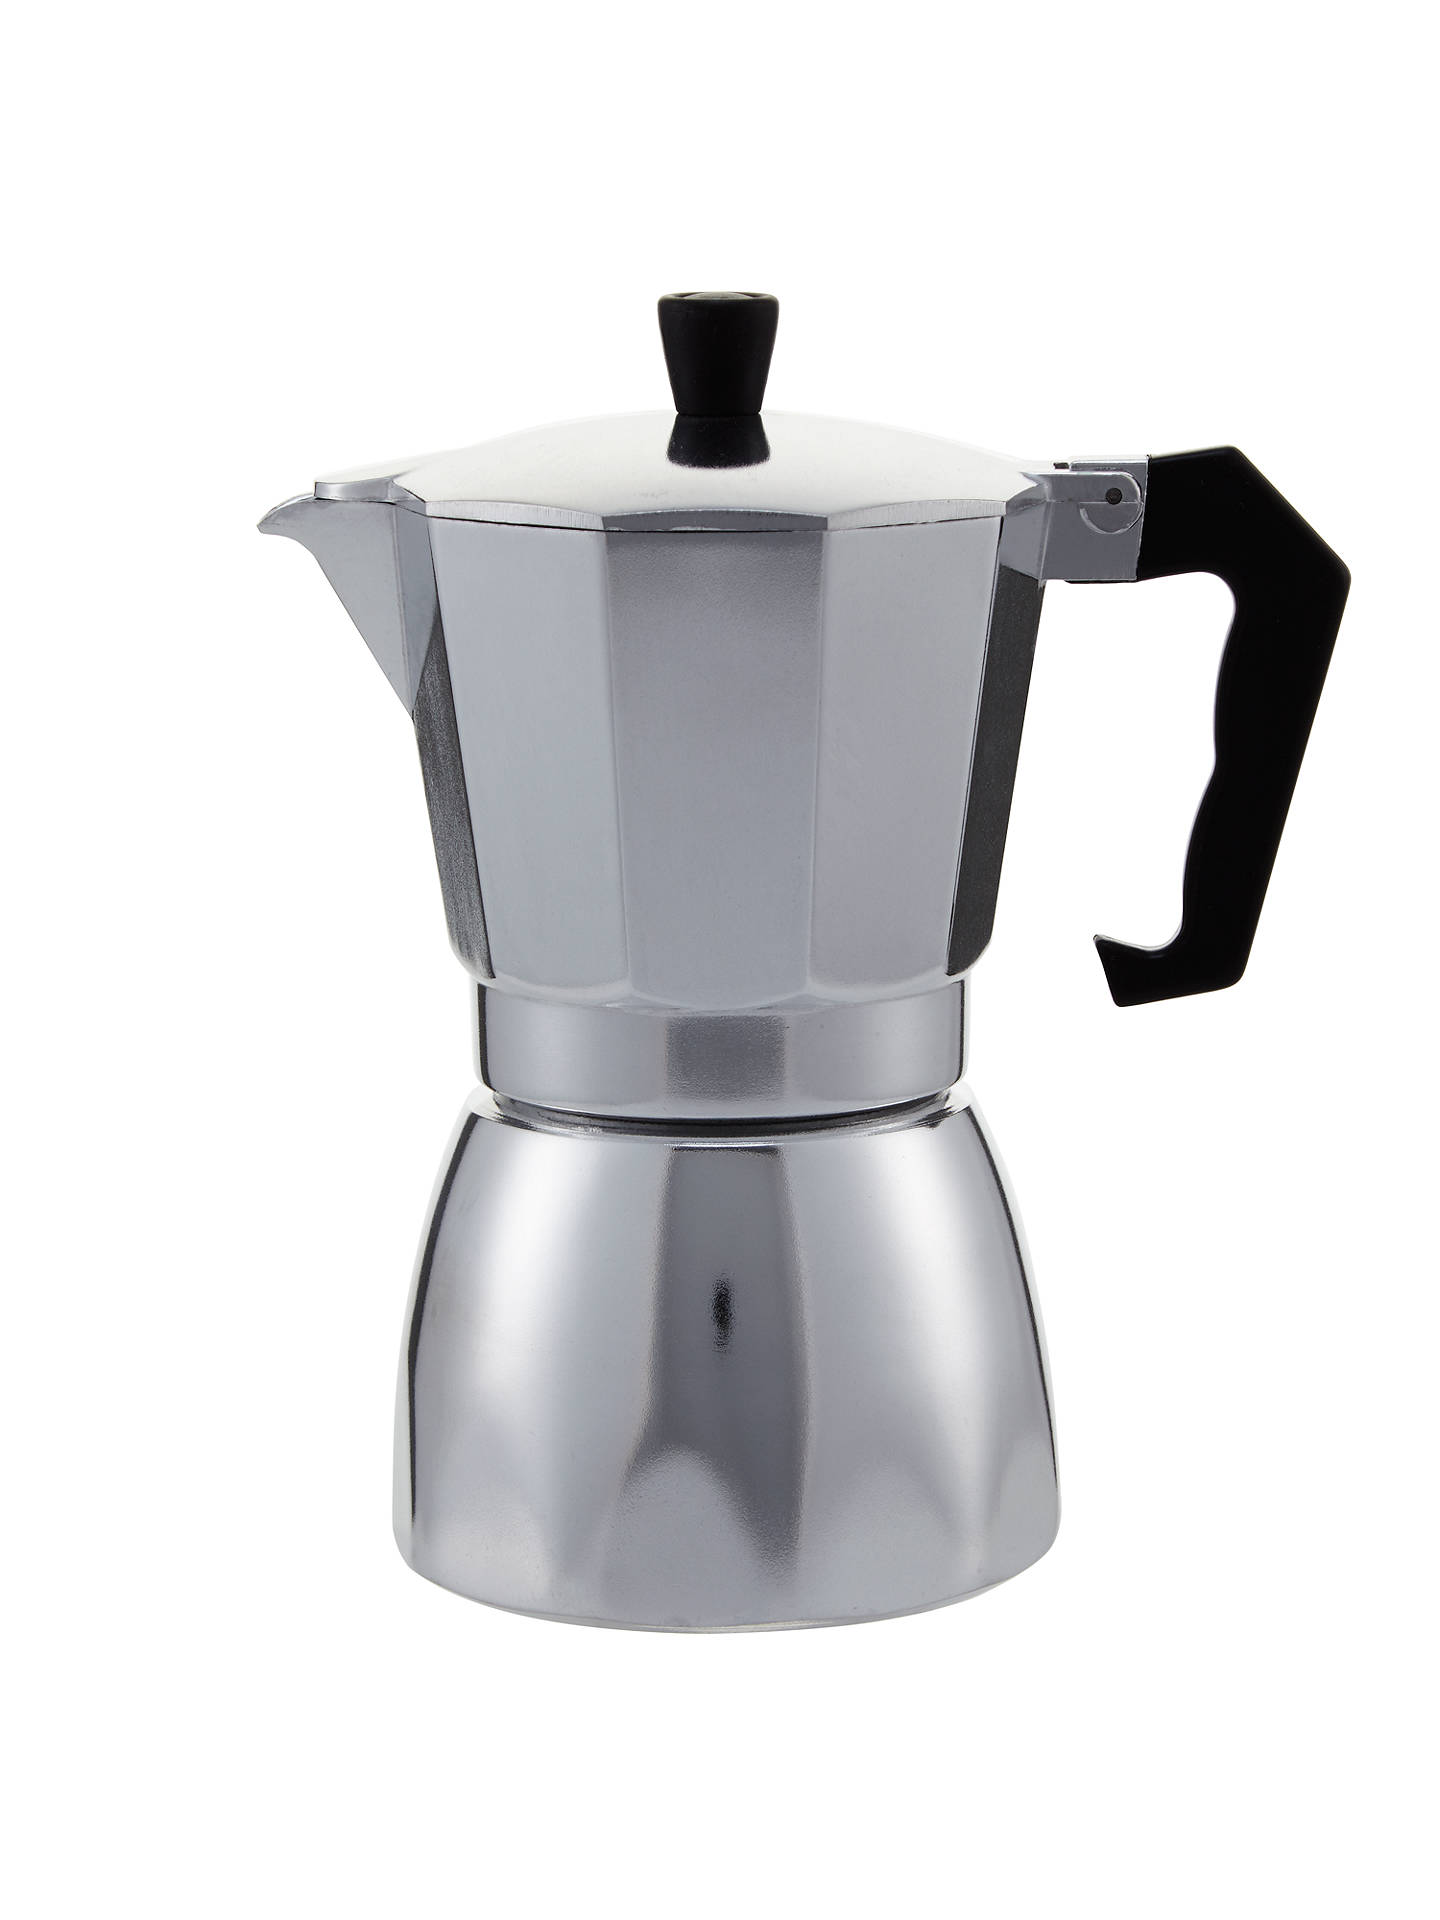 BuyJohn Lewis & Partners Espresso Silver Cafetiere, 6 Cup Online at johnlewis.com